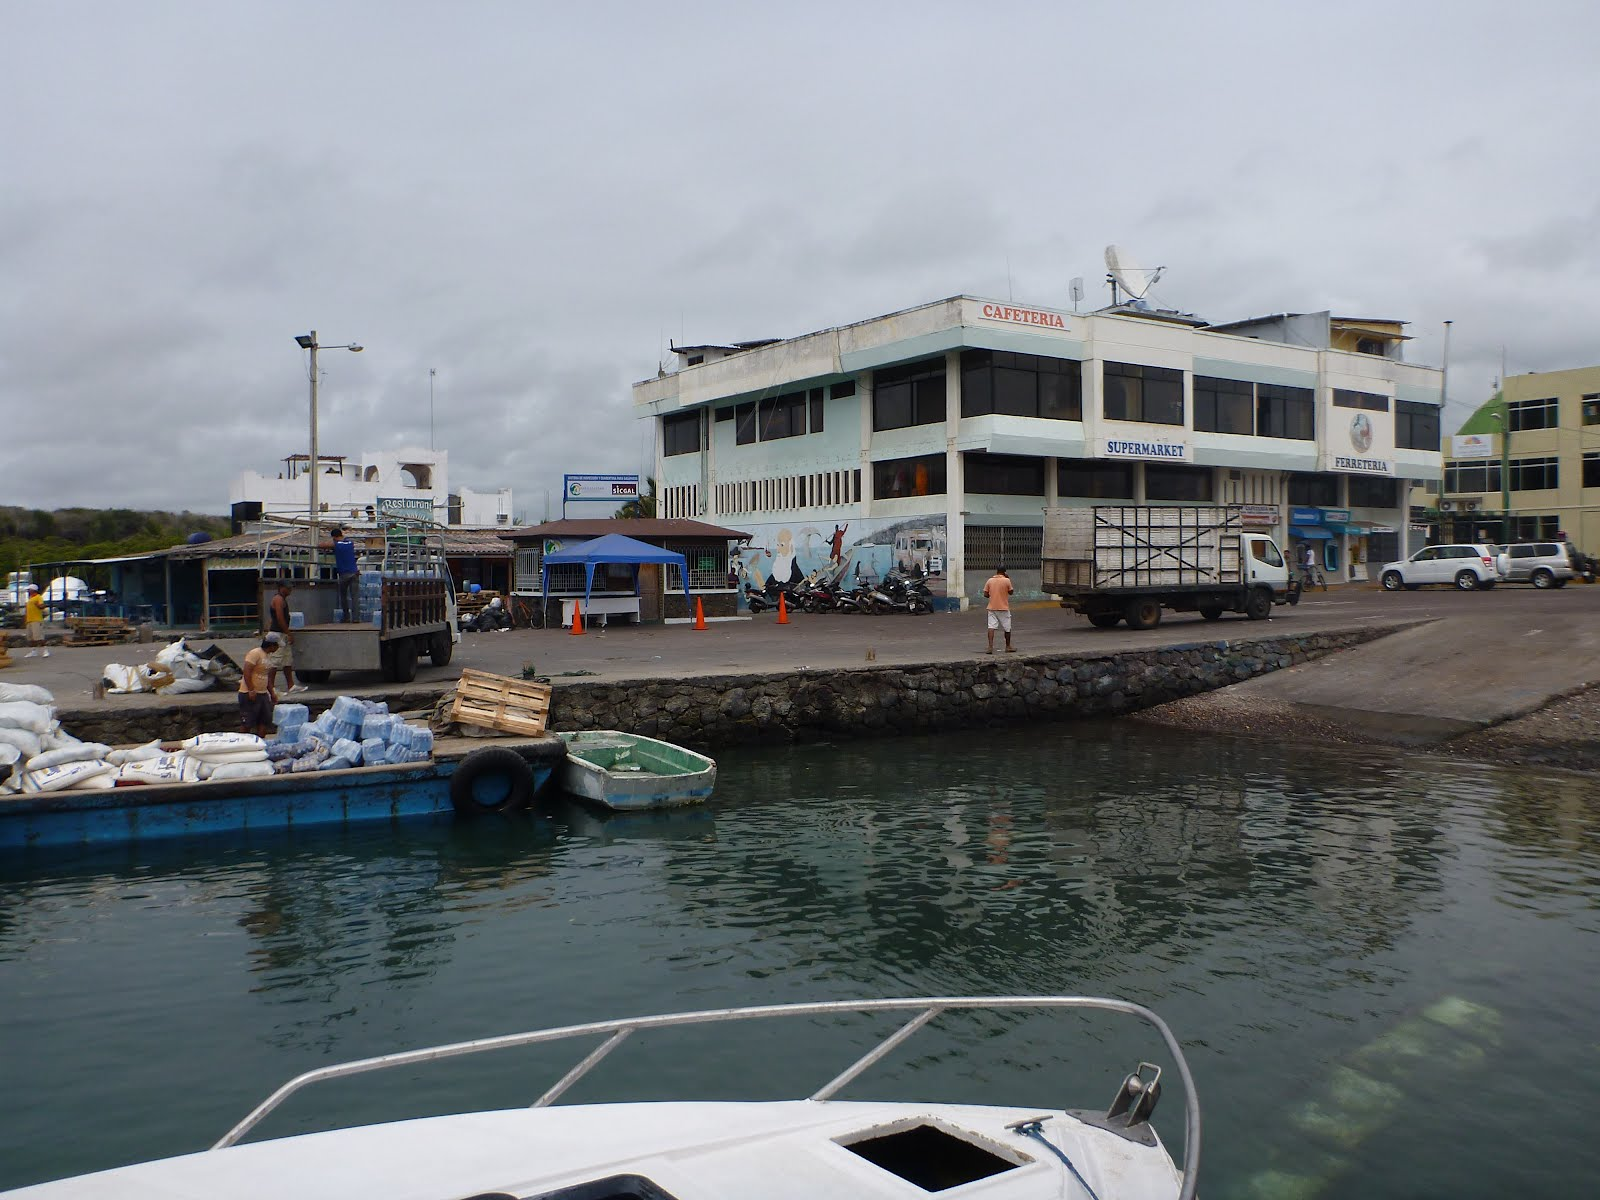 puerto ayora senior singles Hi julia, many thanks for the information that you've managed to get from the galapagos holiday creator out of the 2 ts tours, i much prefer the celebrity xpedition itinerary which visits punta moreno, punta suarez, puerto ayora and santa cruz amongst others.